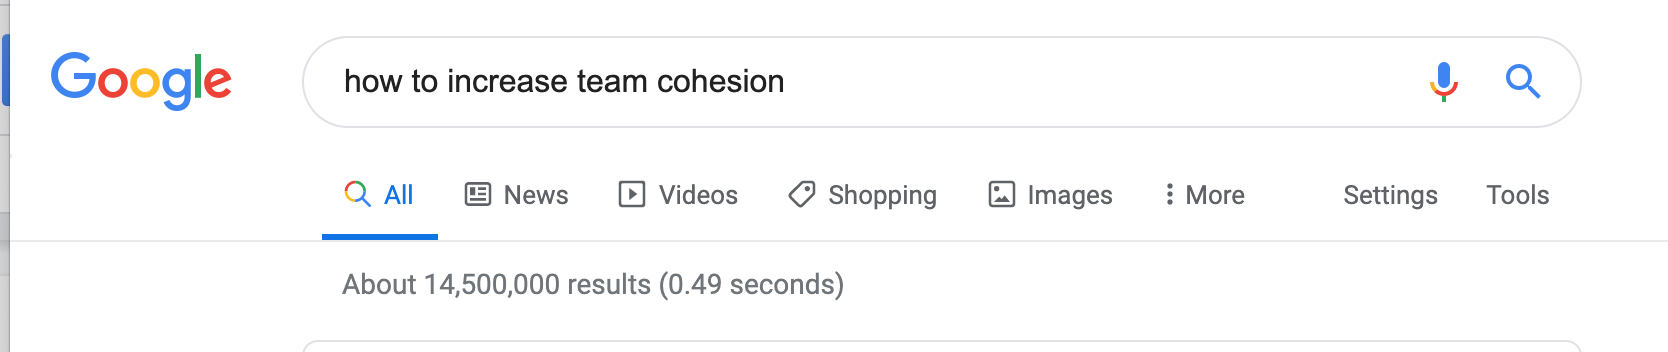 How to increase team cohesion Google results